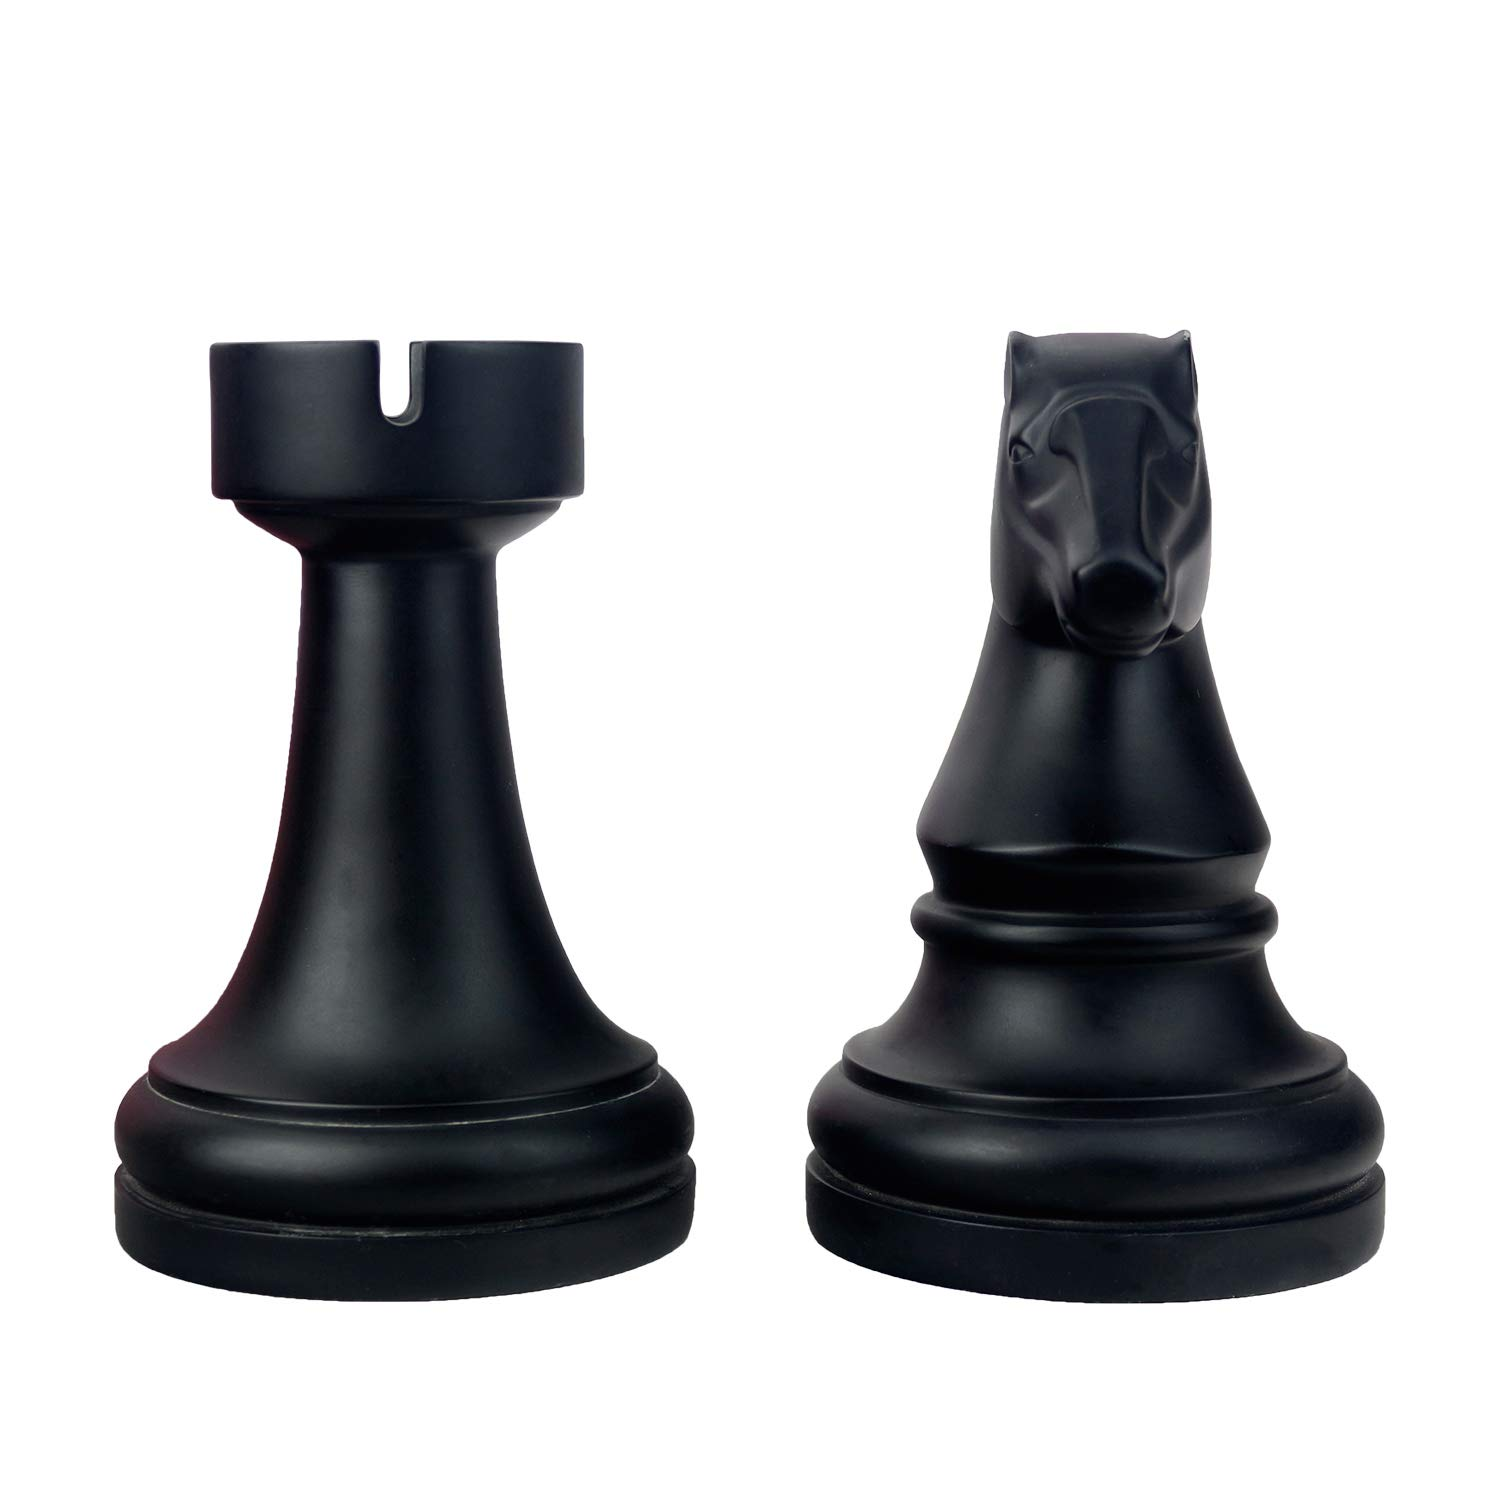 Chess Piece Bookends, Bookends for Heavy Books, 6.7Inch Tall Black Classic Decorative Book Ends, 1Pair/2Piece (Chess)